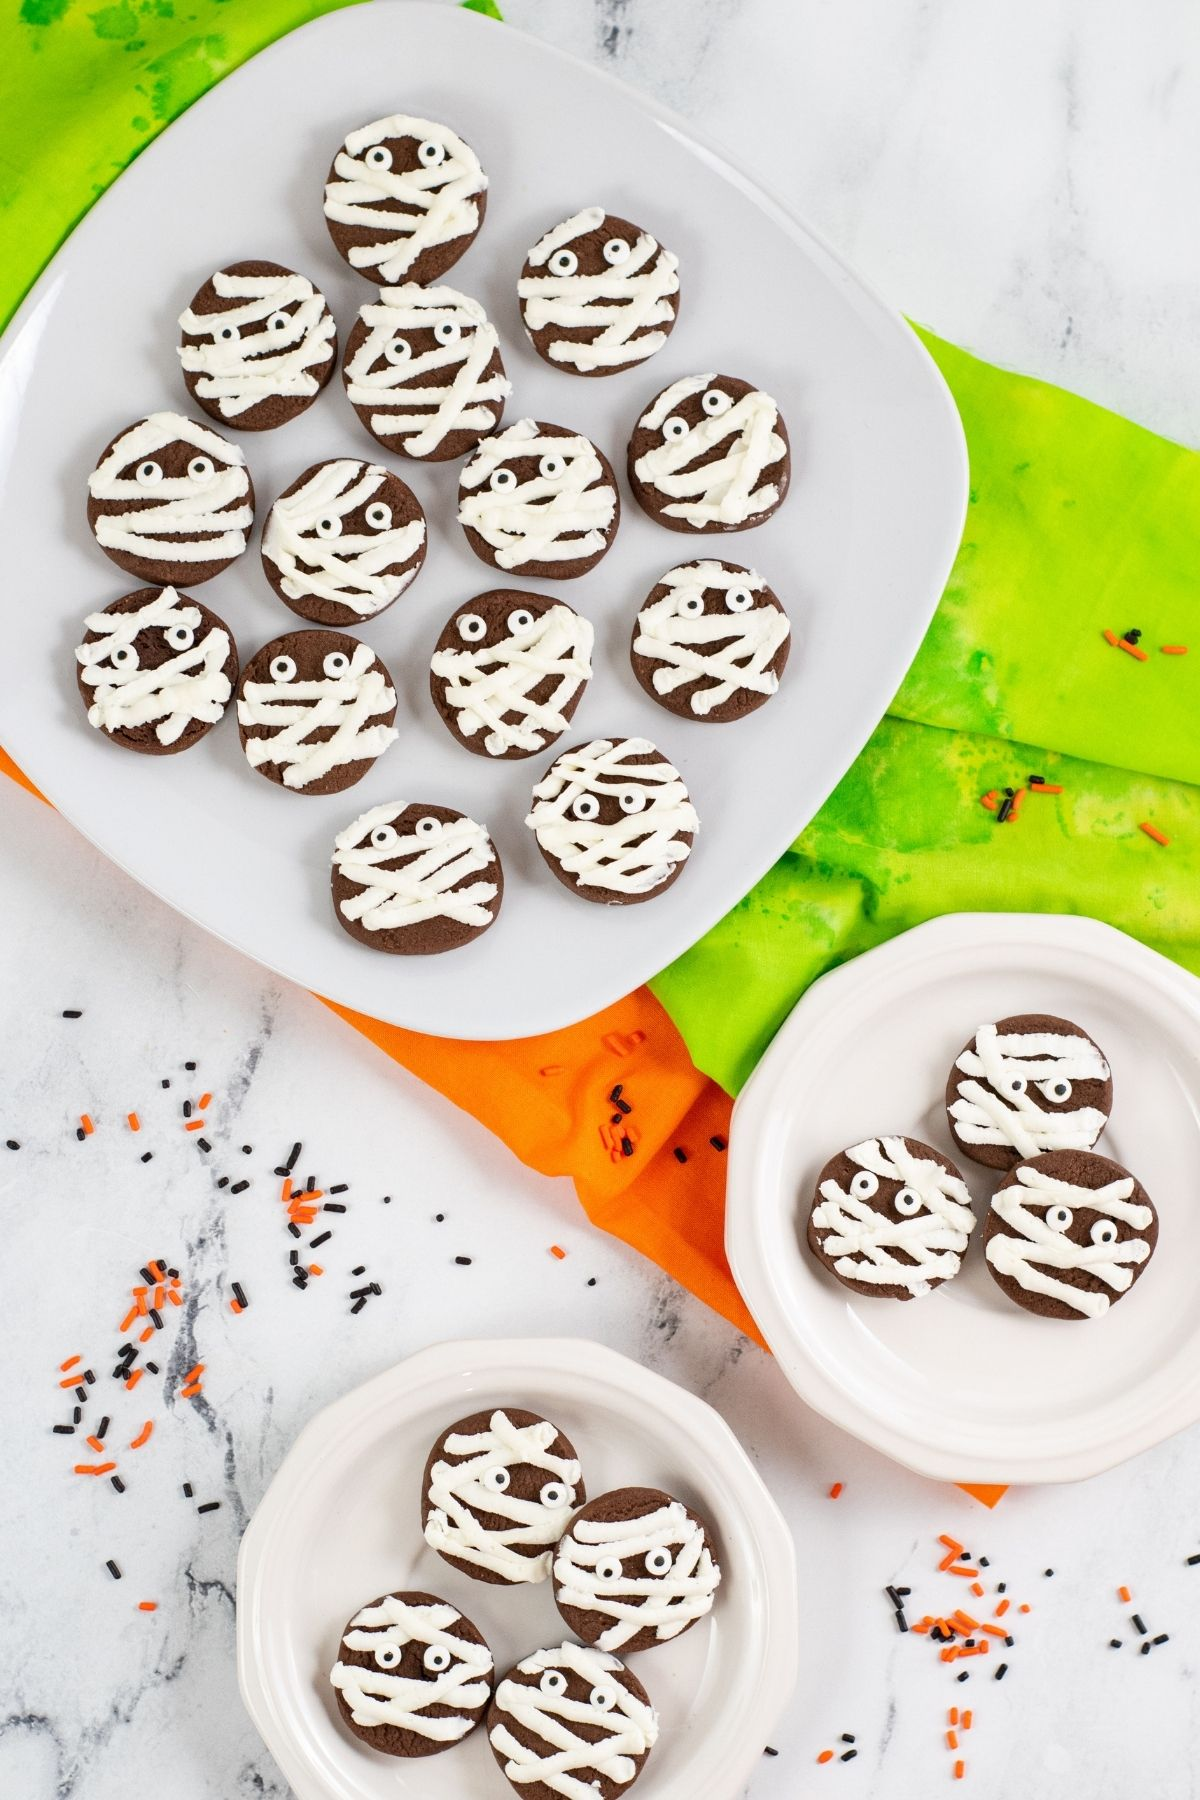 round chocolate cookies with mummy buttercream stripes and candy eyes on white plates